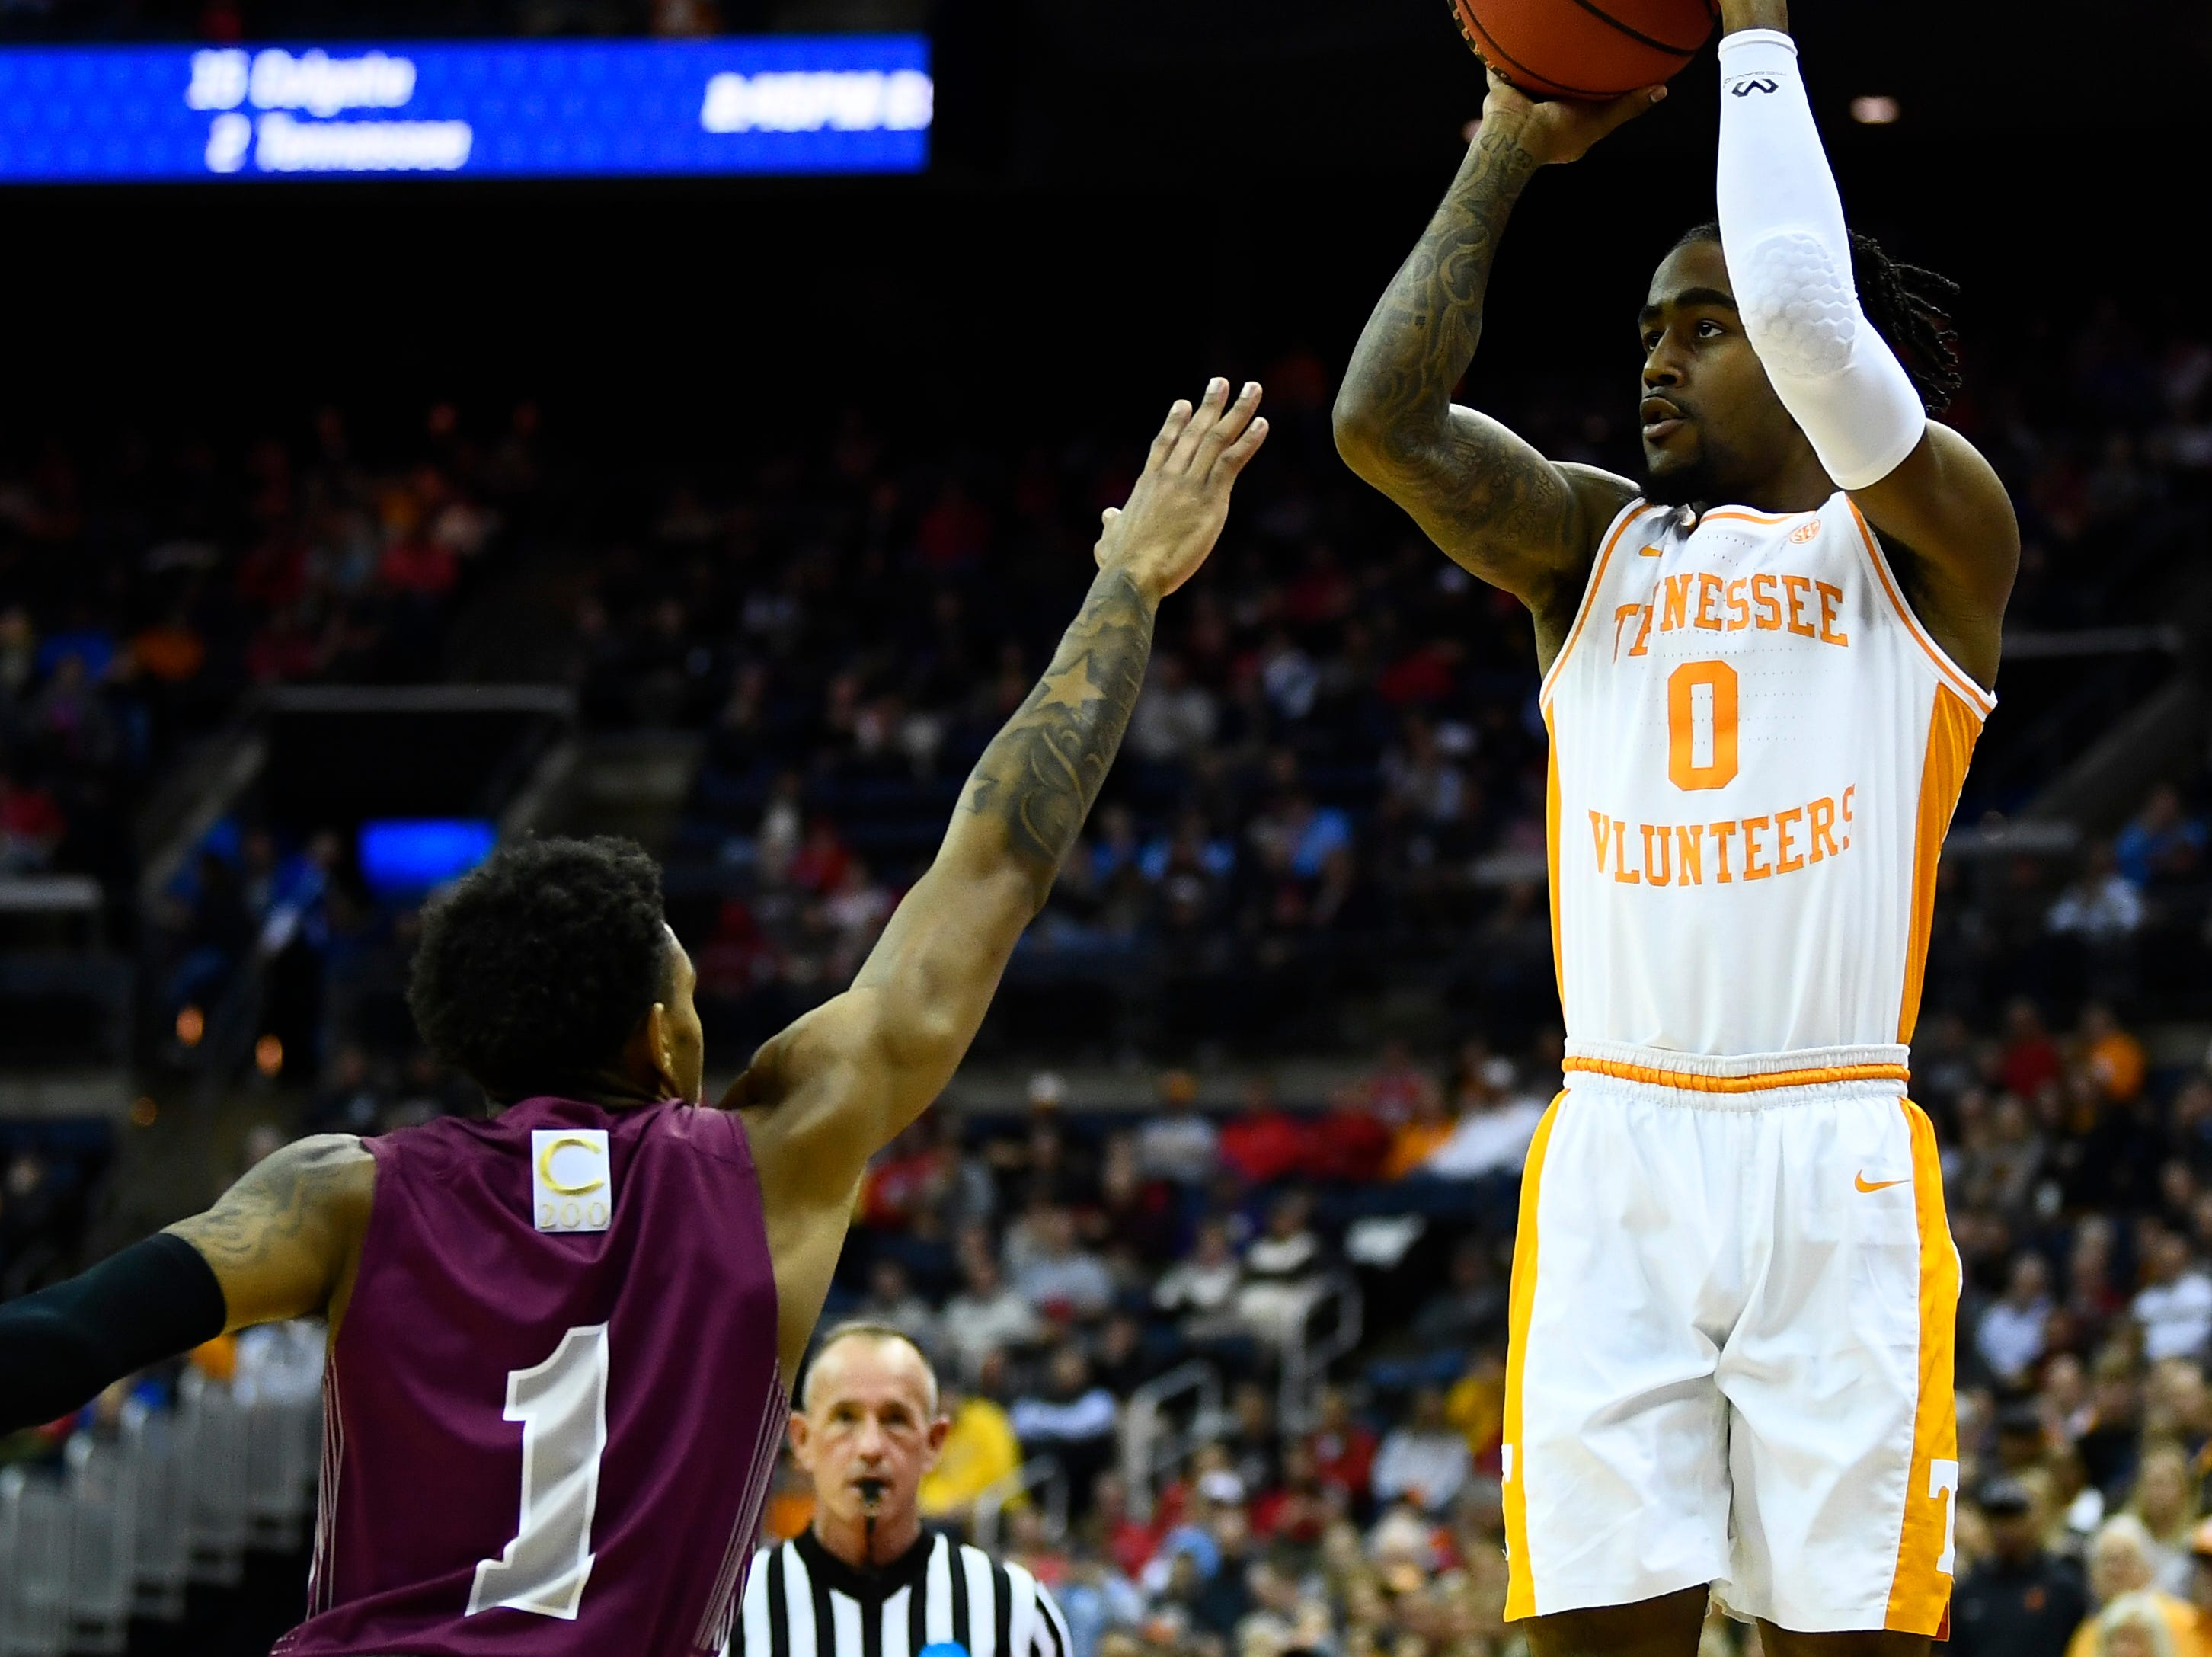 Tennessee guard Jordan Bone (0) shoots for three over Colgate guard Jordan Burns (1) in the first round of the NCAA Tournament at Nationwide Arena in Columbus, Ohio, on Friday, March 22, 2019.